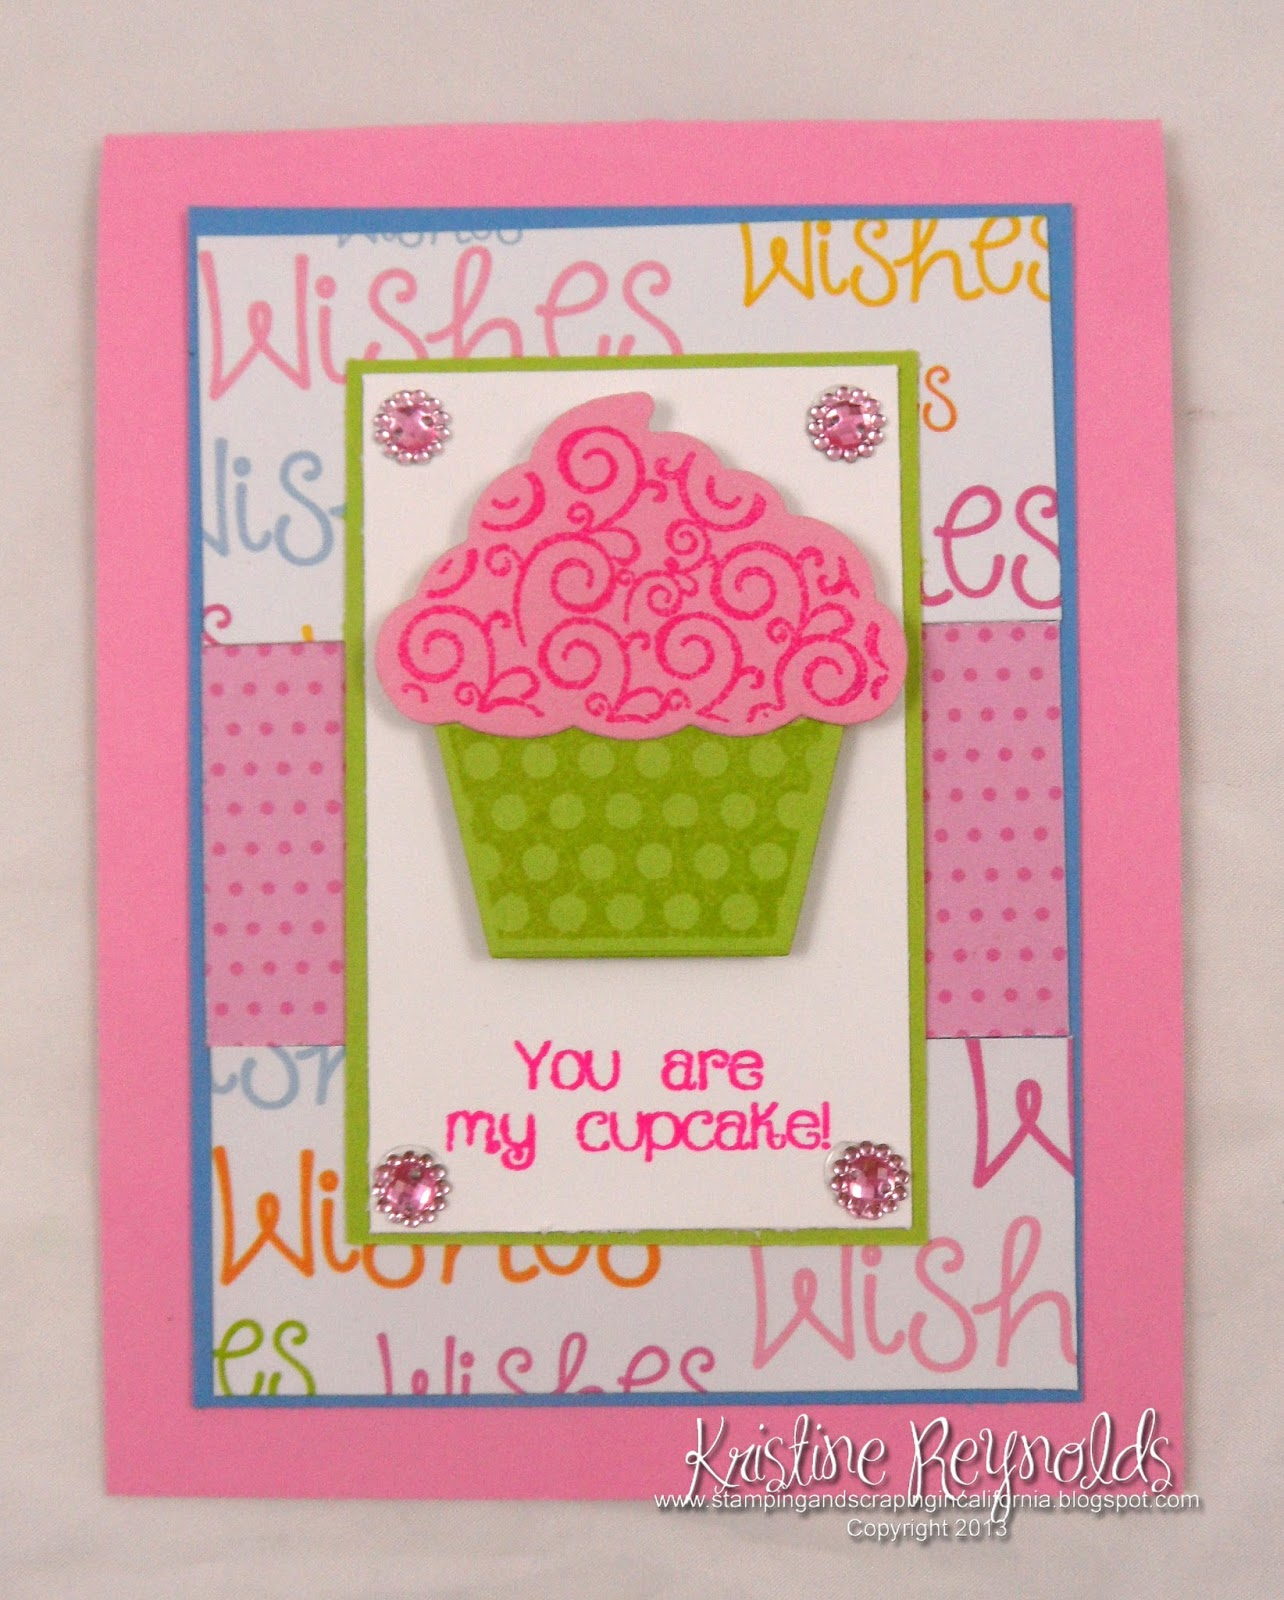 Stamping & Scrapping In California: Cupcake Cards